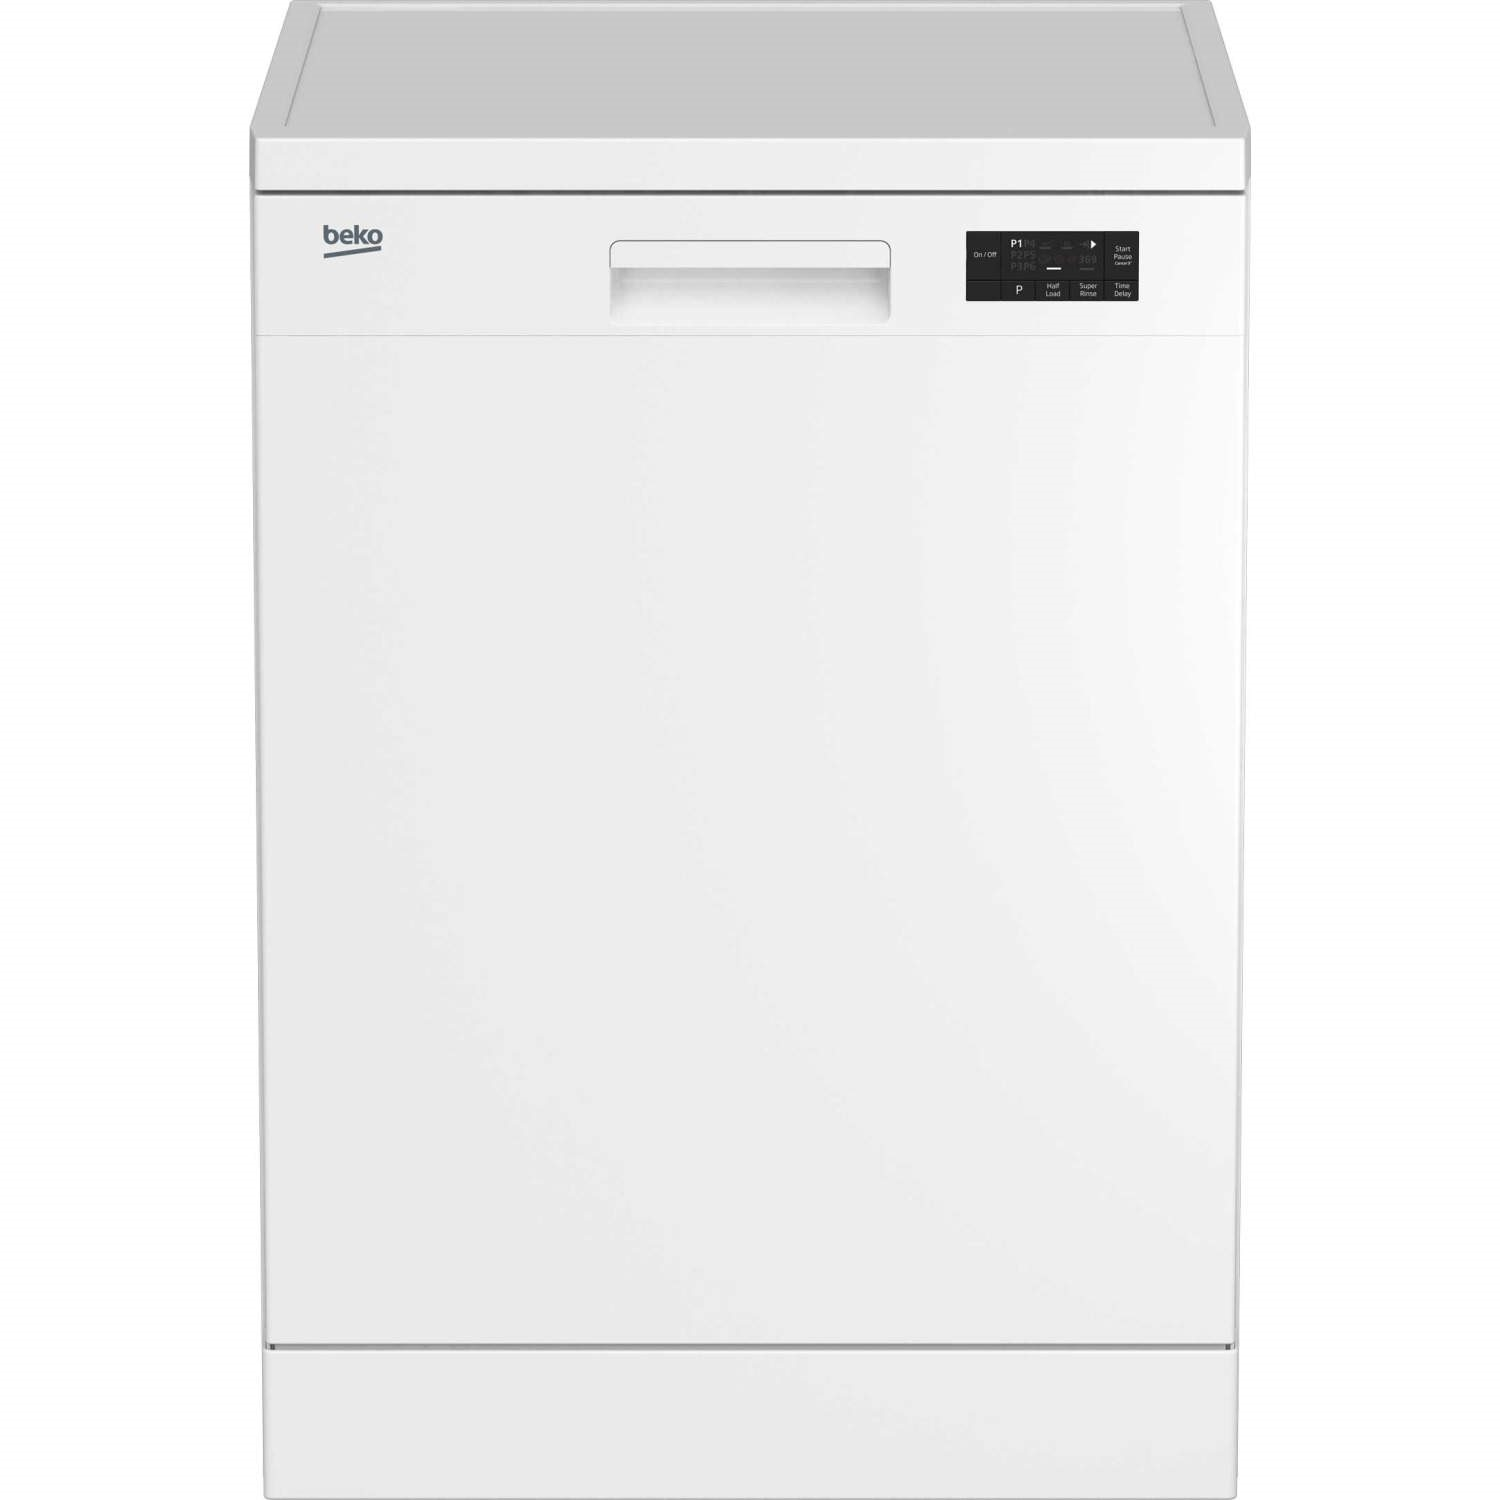 Beko Dfn16210w 12 Place Freestanding Dishwasher White